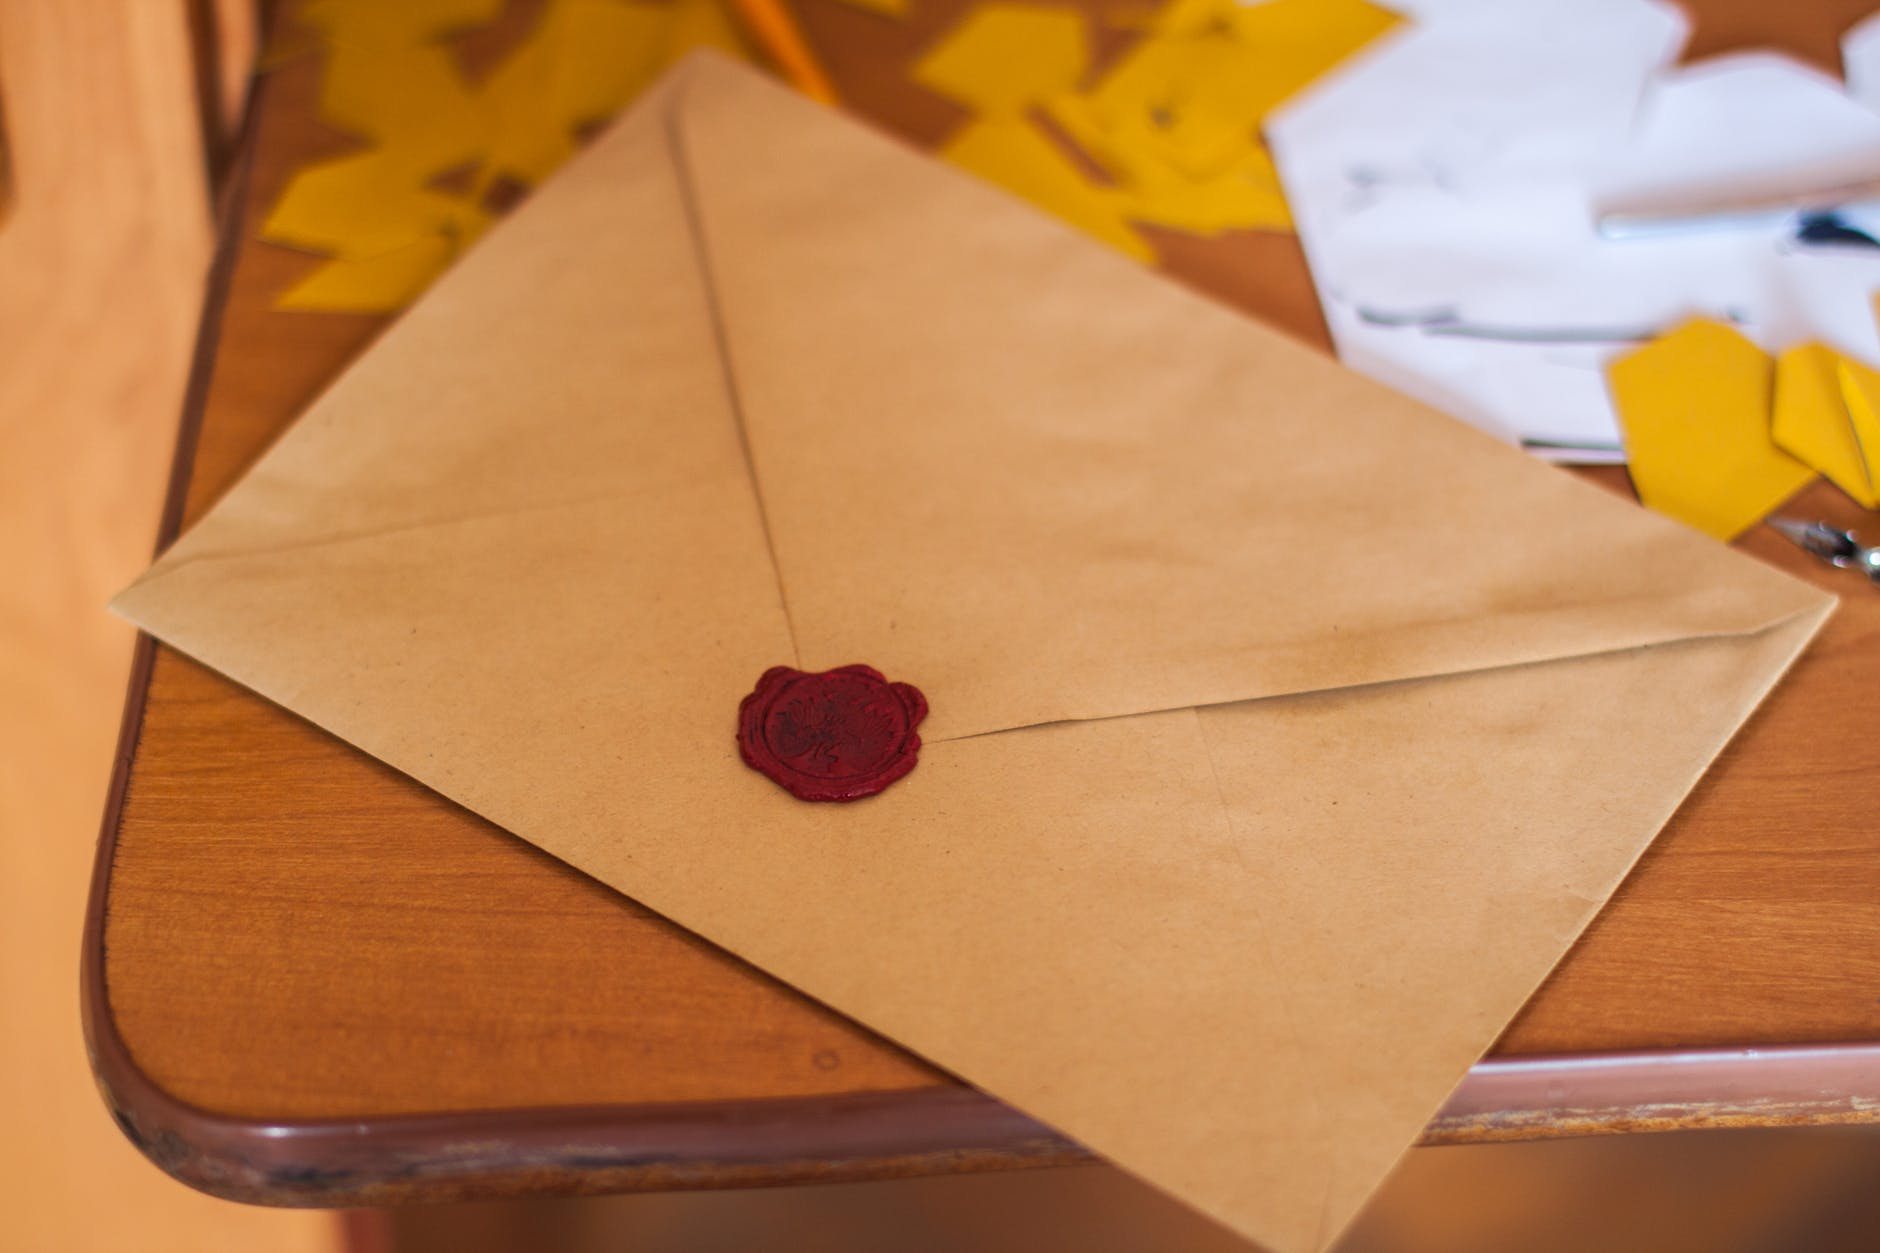 166,875,000,000 pieces of mail are delivered each year in the U.S.